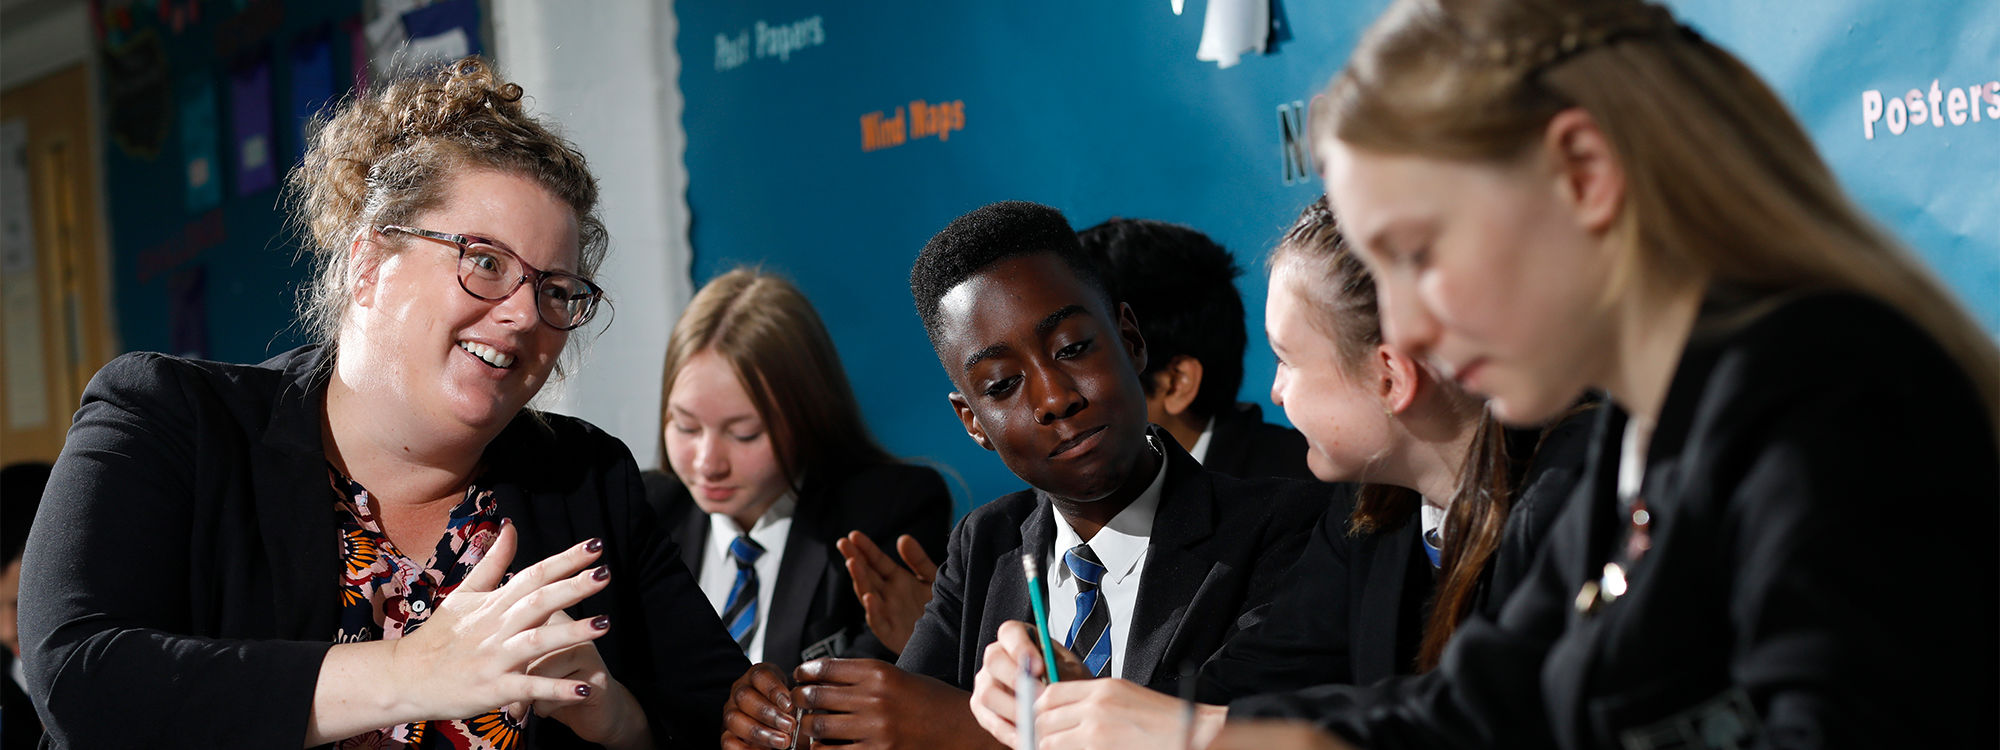 Northolt high school header image 14